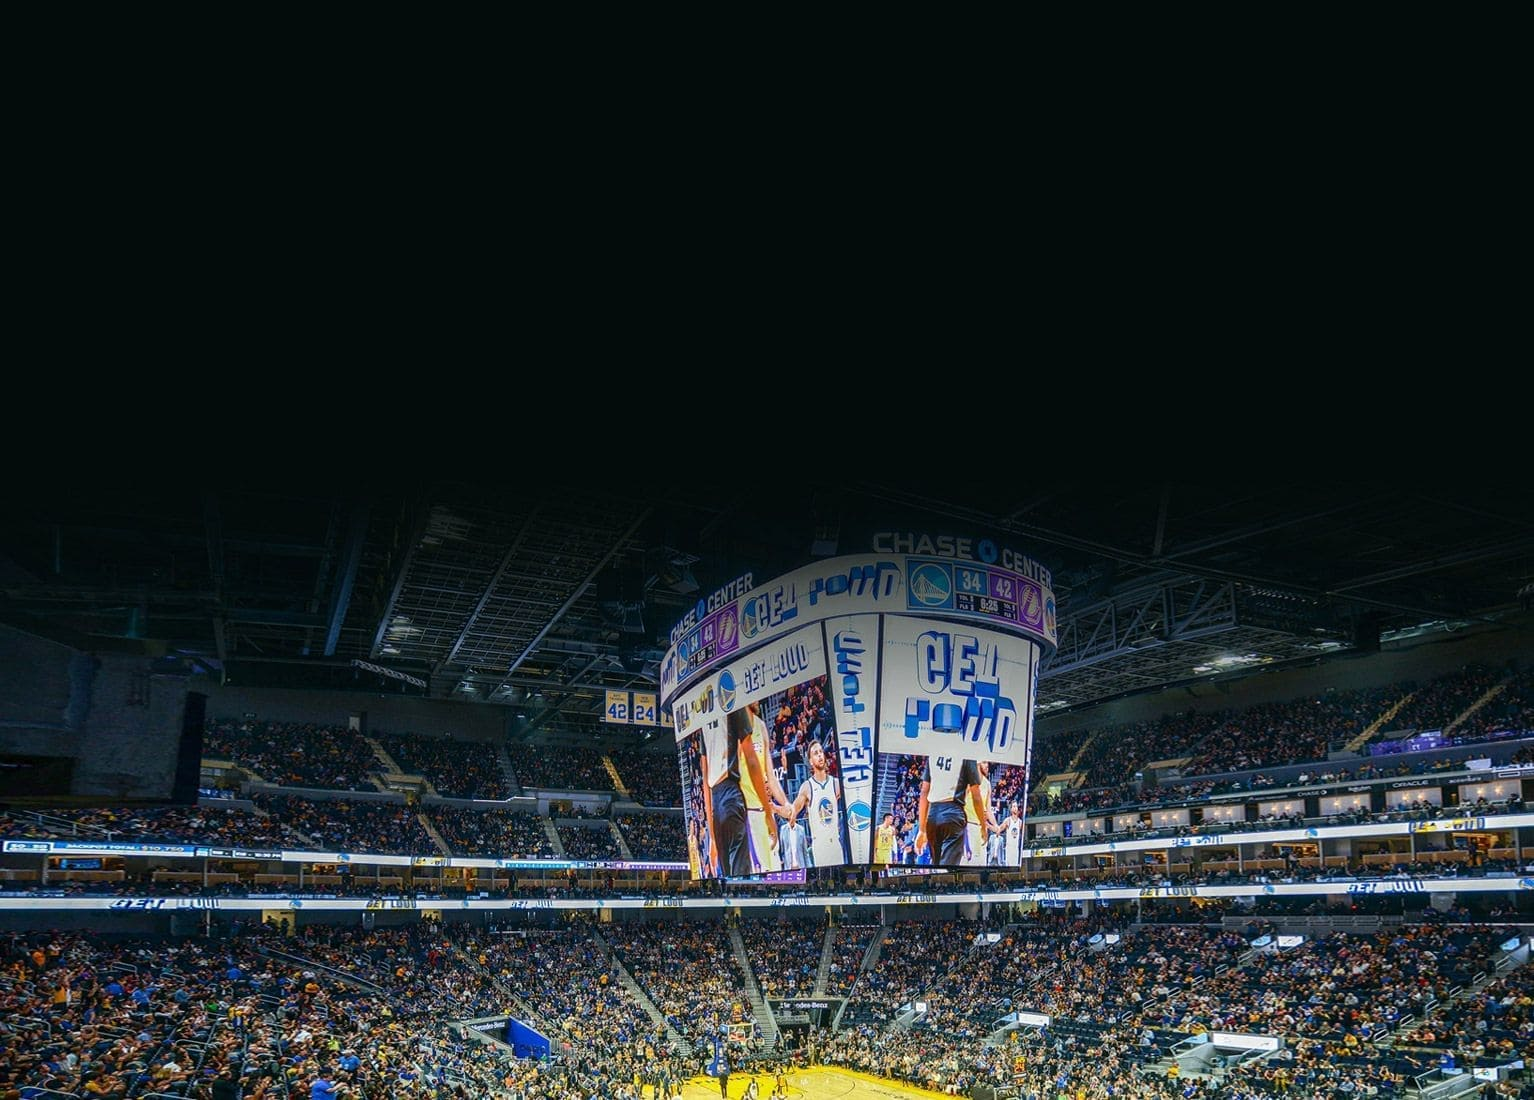 Samsung install NBA's Largest Centerhung LED Scoreboard at Chase Center